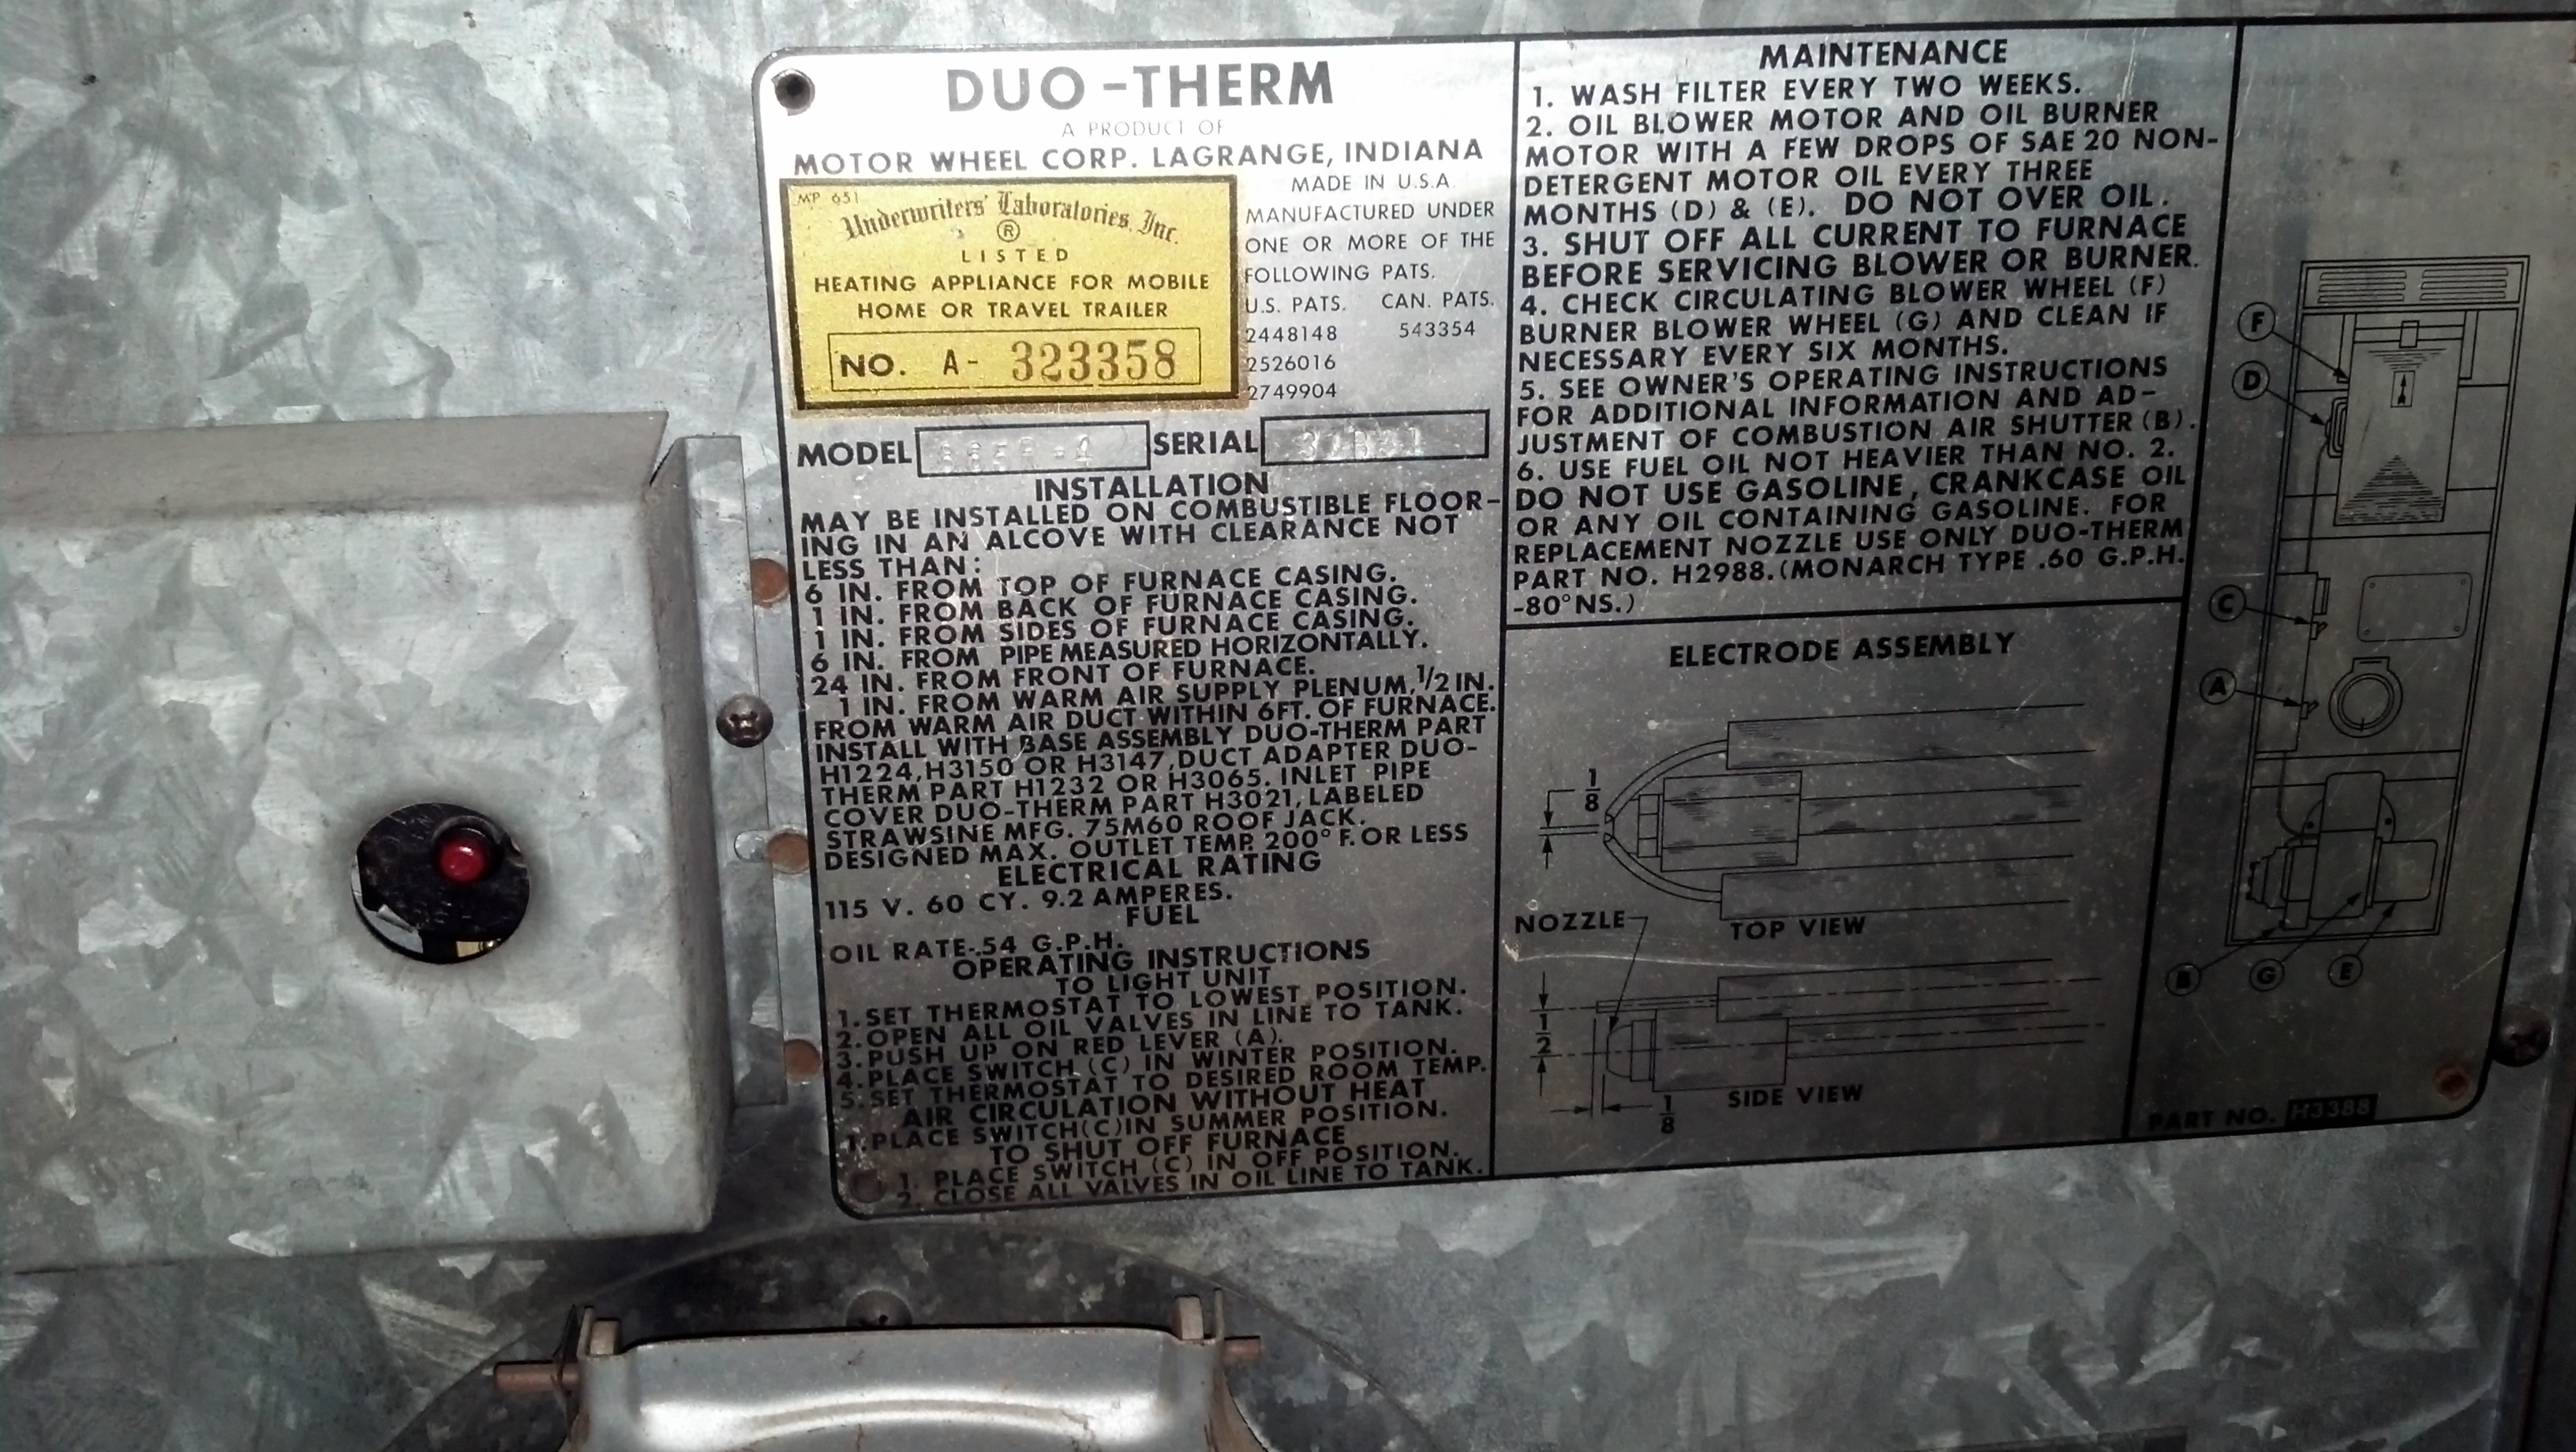 I apologize for the confusion. I just wasnt sure if it uses fuel oil or  kerosene. I attached a couple photos of the info plate and furnace. Thanks,  Reg